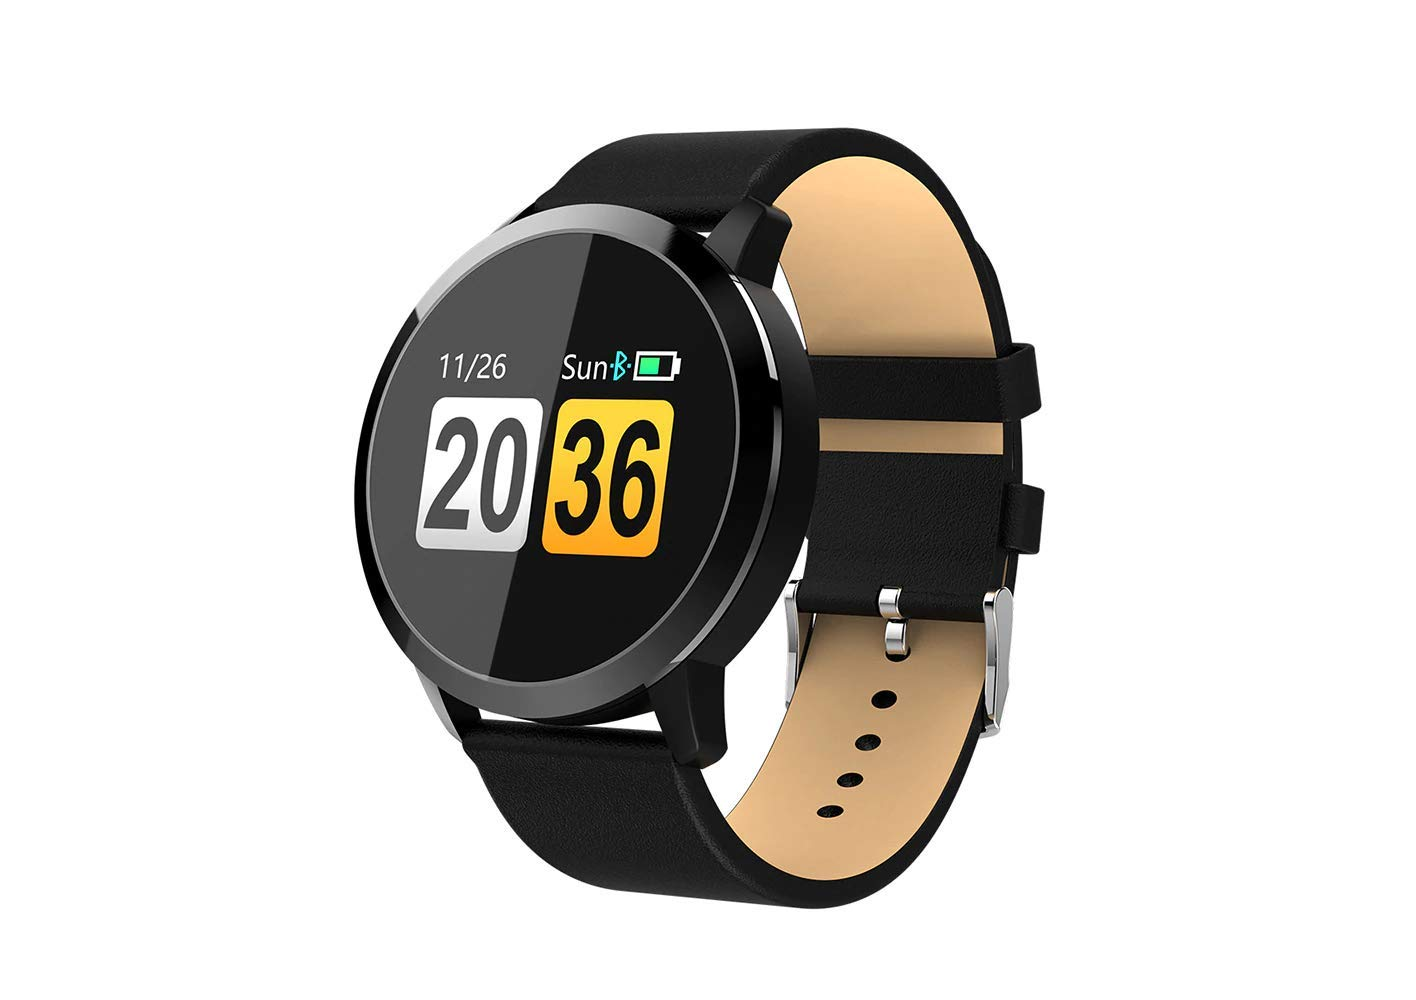 Amazon.com: LEMFO Newwear Q8 Smartwatch for a Women and Men ...